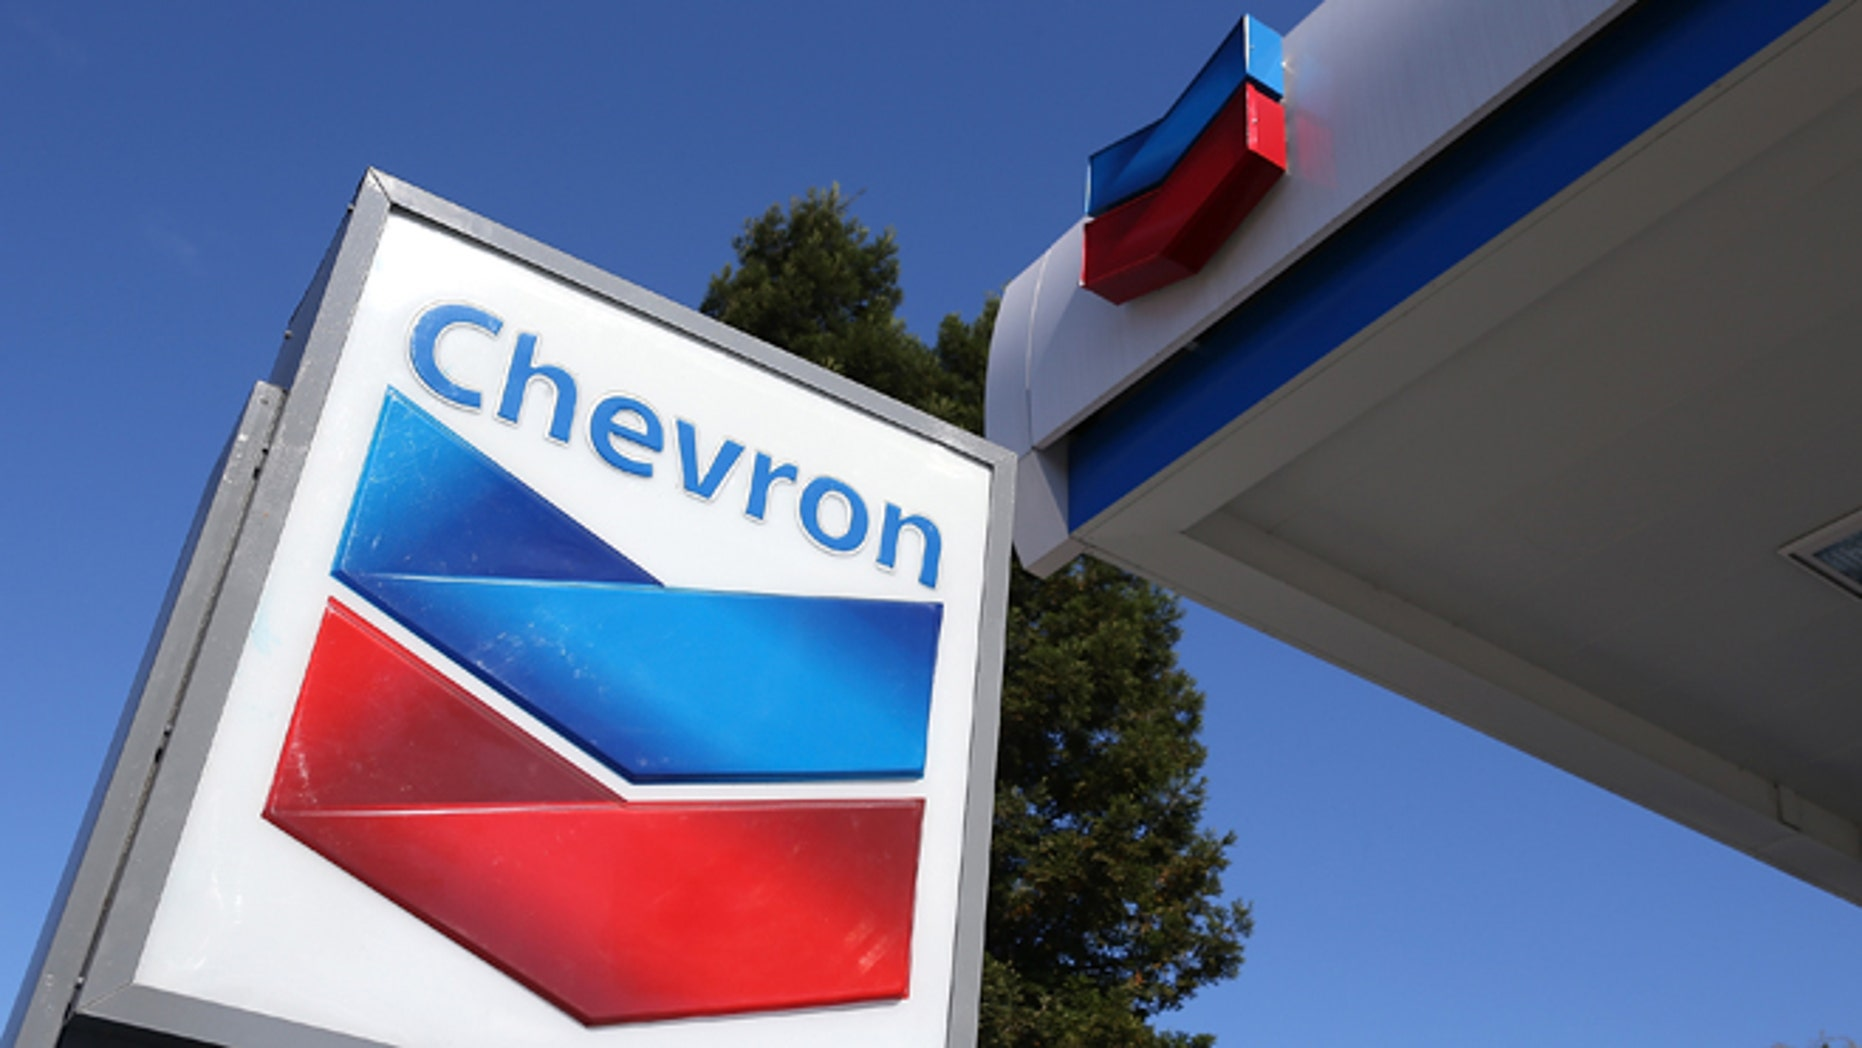 SAN RAFAEL, CA - JULY 27:  A sign is posted at a Chevron gas station on July 27, 2012 in San Rafael, California.  Chevron reported a 6.8 percent decline in second quarter earnings with profits of $7.21 billion compared to $7.73 billion one year ago.  (Photo by Justin Sullivan/Getty Images)